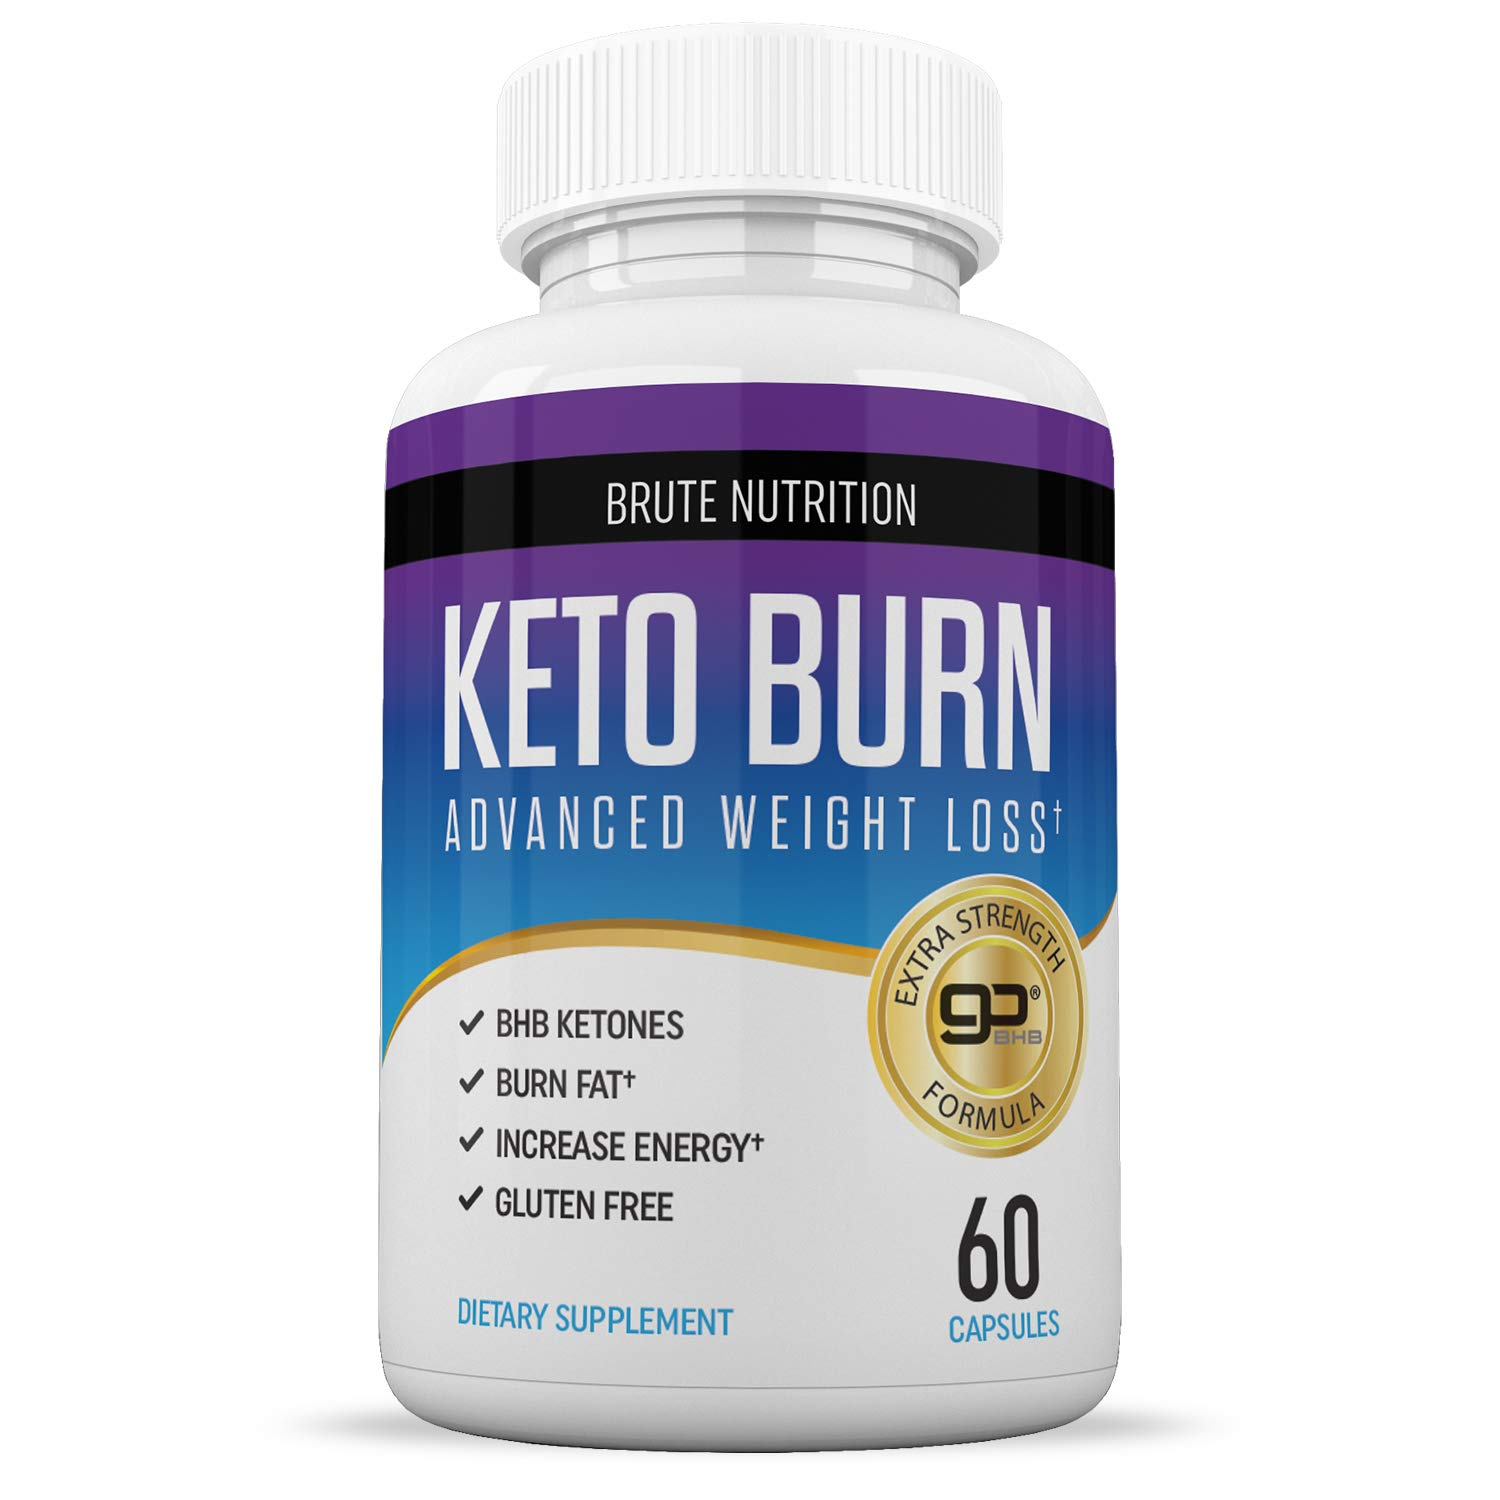 Brute Nutrition Keto Weight Loss Supplement Boosts Energy And Metabolism 60 Capsules